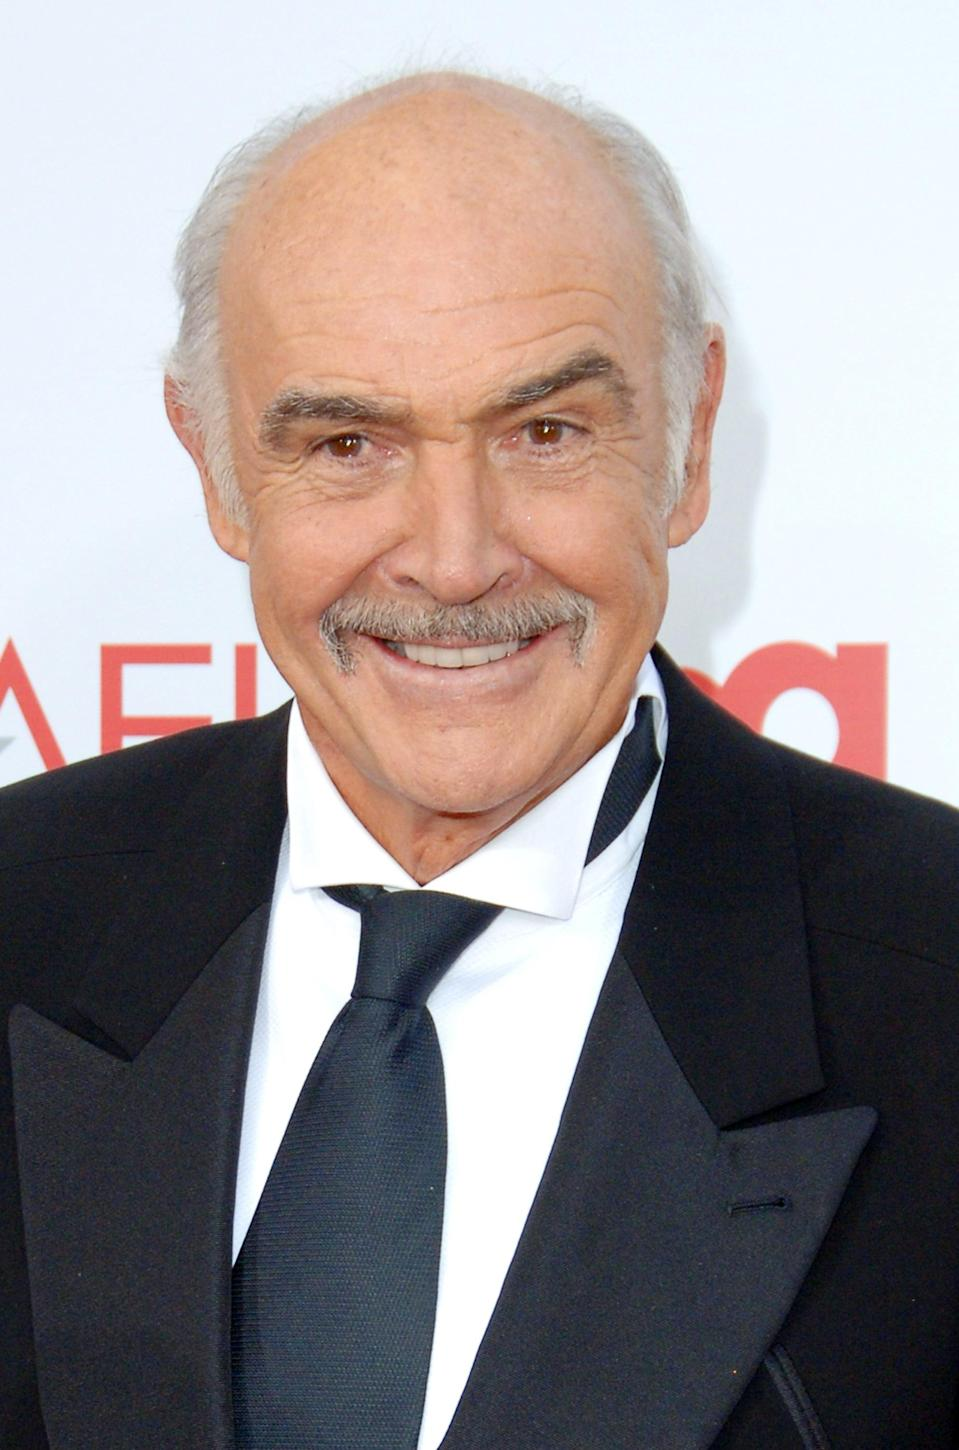 """<p>The actor, best known for playing James Bond, <a href=""""https://variety.com/2020/film/actors/sean-connery-dies-oscar-winner-and-james-bond-star-dead-at-90-1234820498/"""" class=""""link rapid-noclick-resp"""" rel=""""nofollow noopener"""" target=""""_blank"""" data-ylk=""""slk:died at age 90"""">died at age 90</a> on Oct. 31. James Bond producers Michael G. Wilson and Barbara Broccoli <a href=""""https://twitter.com/007/status/1322524367914414082?s=20"""" class=""""link rapid-noclick-resp"""" rel=""""nofollow noopener"""" target=""""_blank"""" data-ylk=""""slk:said in a statement"""">said in a statement</a>: """"He was and shall always be remembered as the original James Bond whose indelible entrance into cinema history began when he announced those unforgettable words - 'The name's Bond... James Bond' - he revolutionised the world with his gritty and witty portrayal of the sexy and charismatic secret agent. He is undoubtedly largely responsible for the success of the film series and we shall be forever grateful to him.""""</p>"""